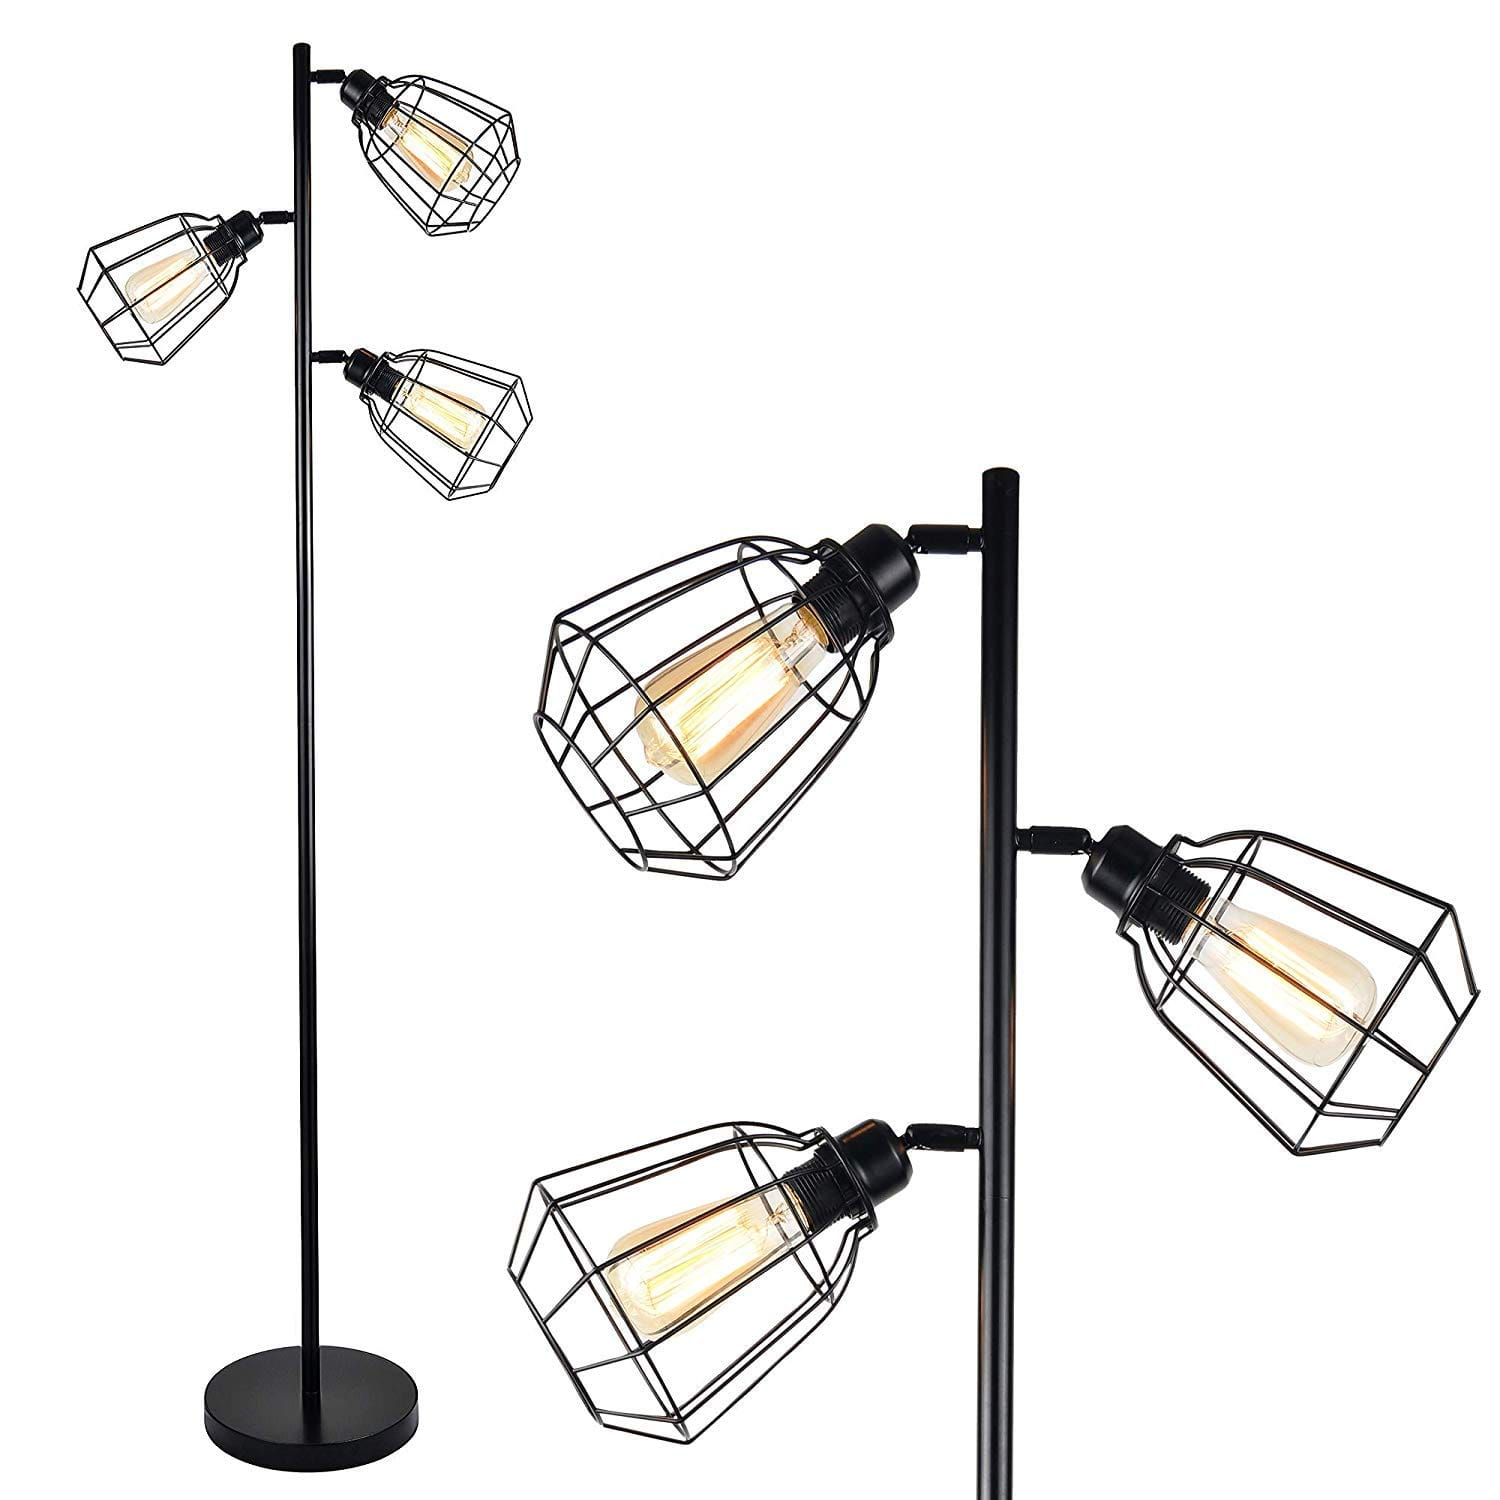 Leonlite Floor Lamp 3 Heads Track Tree/Vintage $54.39